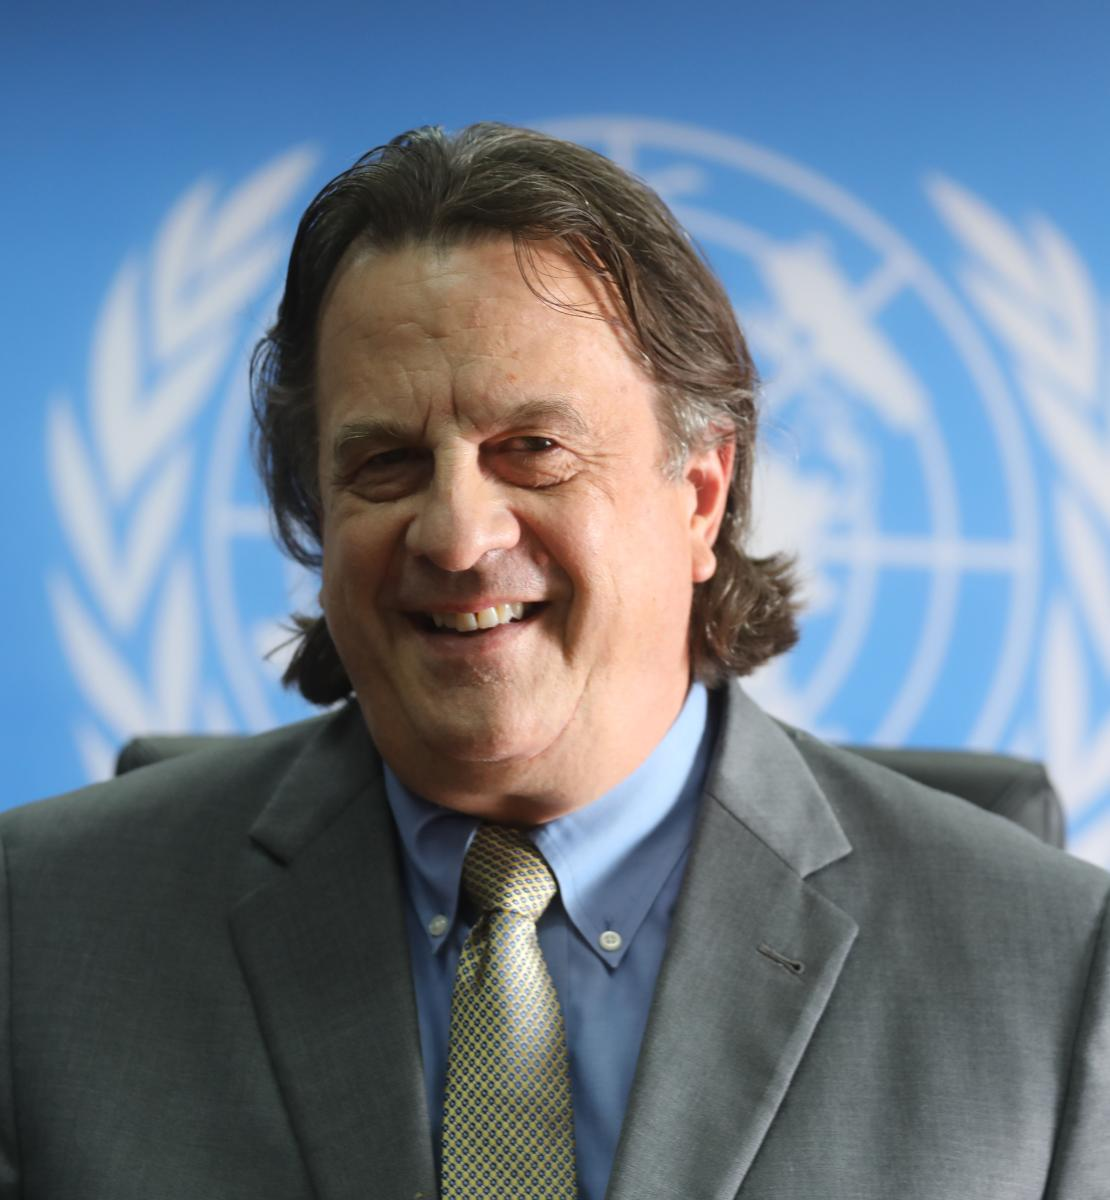 Official photo of the new appointed Resident Coordinator for Yemen, David Gressly.